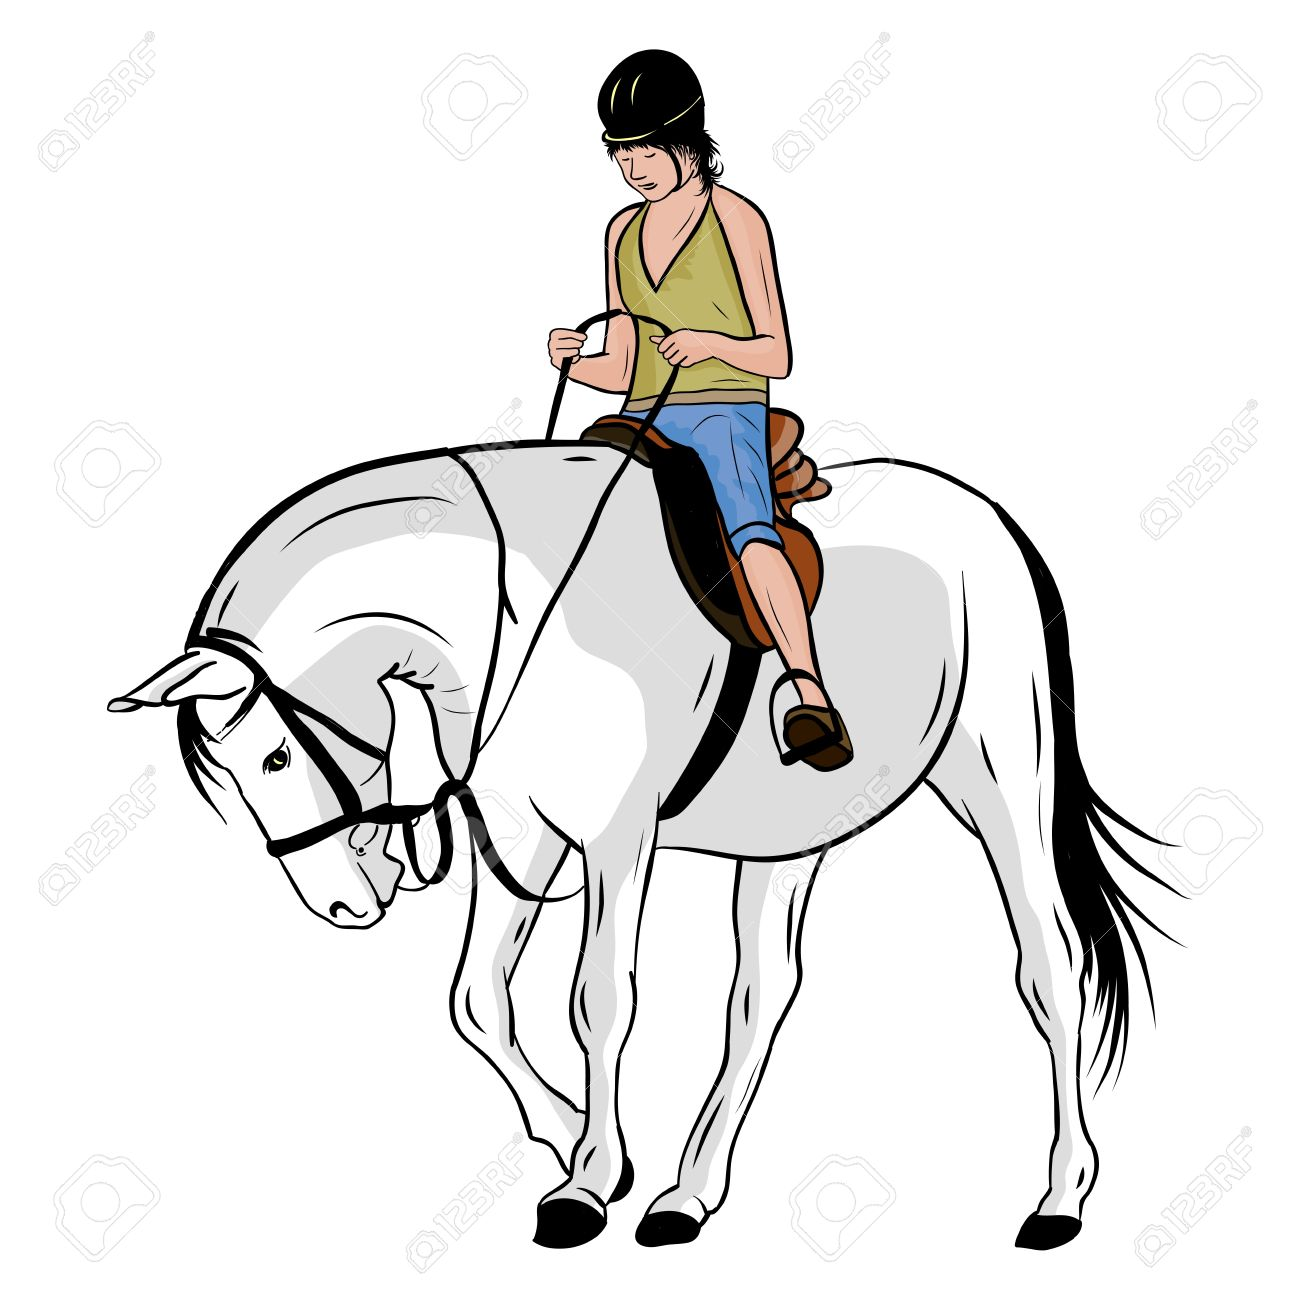 12 388 Horse Riding Cliparts Stock Vector And Royalty Free Horse